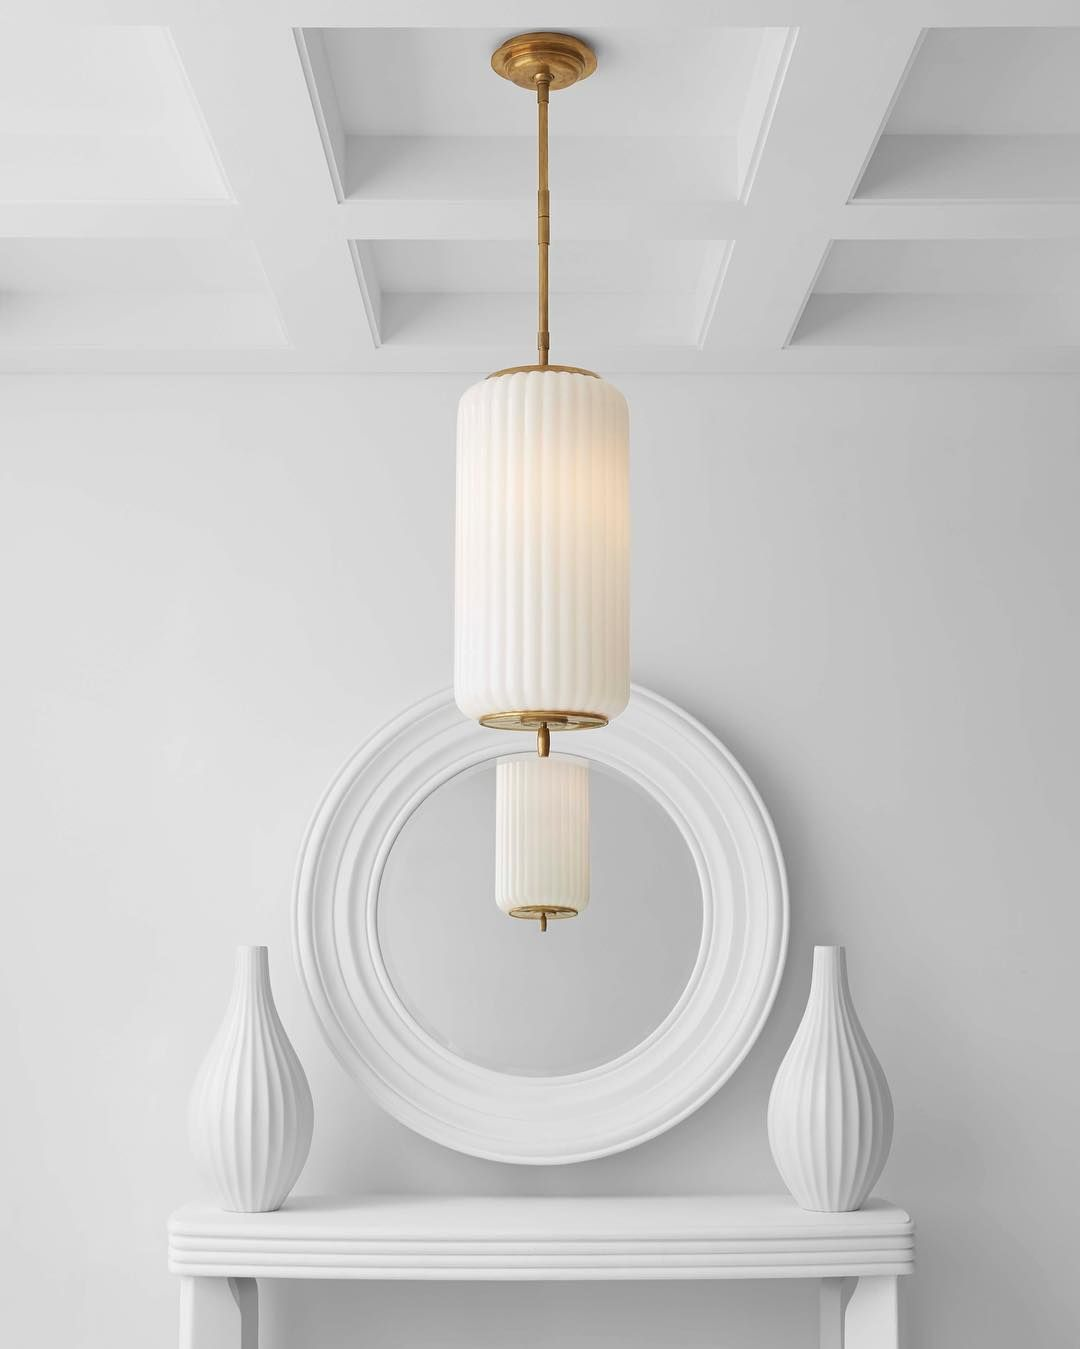 The eden pendant by thomas obrien lighting pinterest visual the eden pendant by thomas obrien arubaitofo Image collections